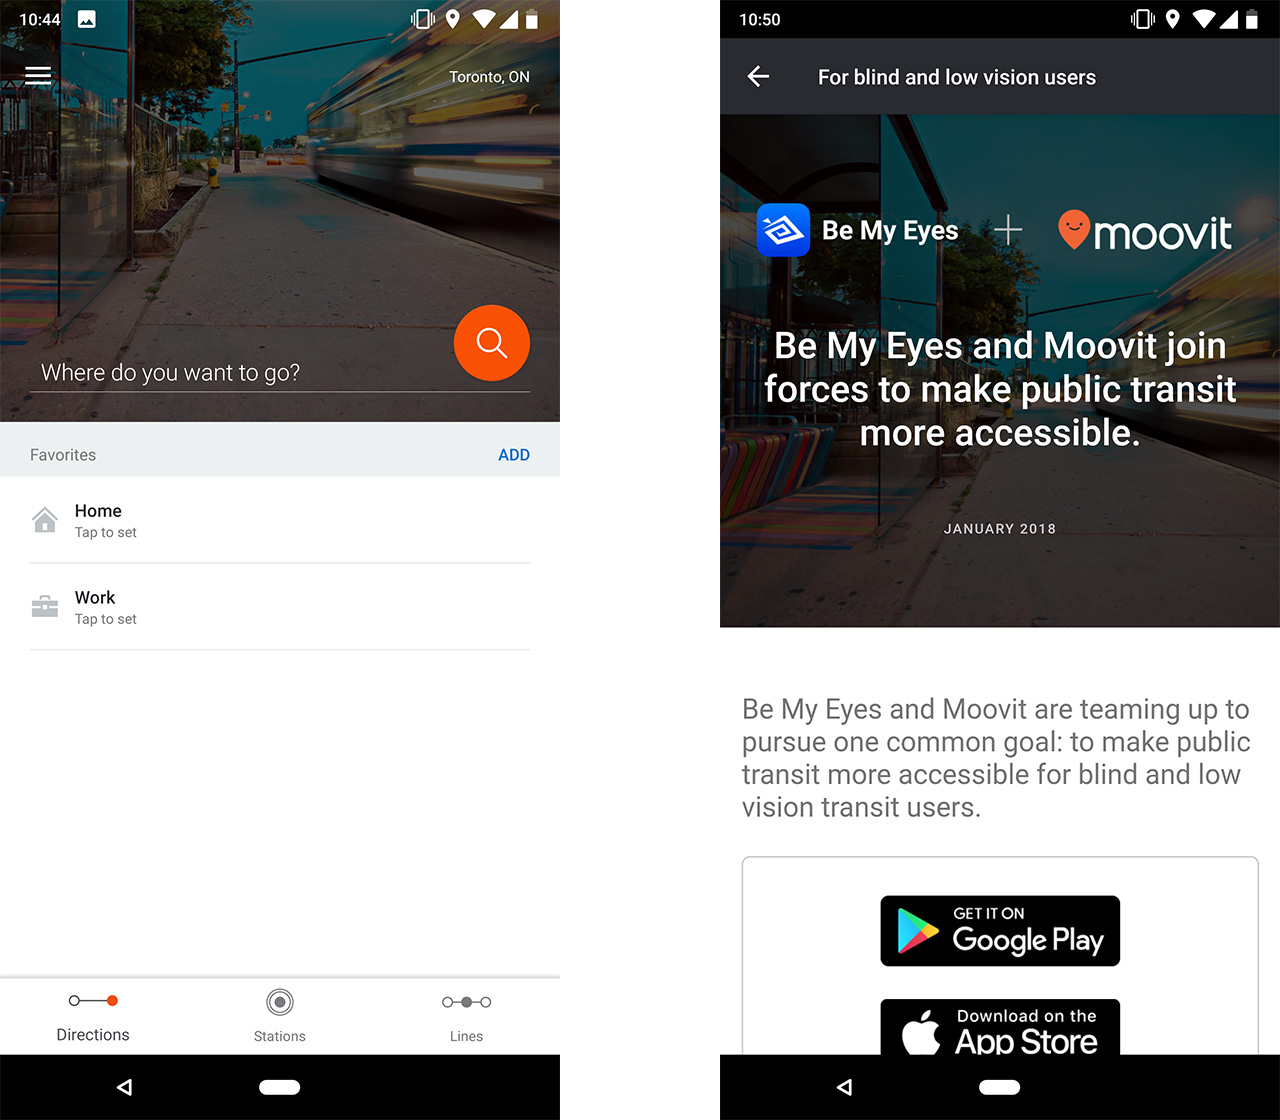 Moovit search and Be My Eyes partnership